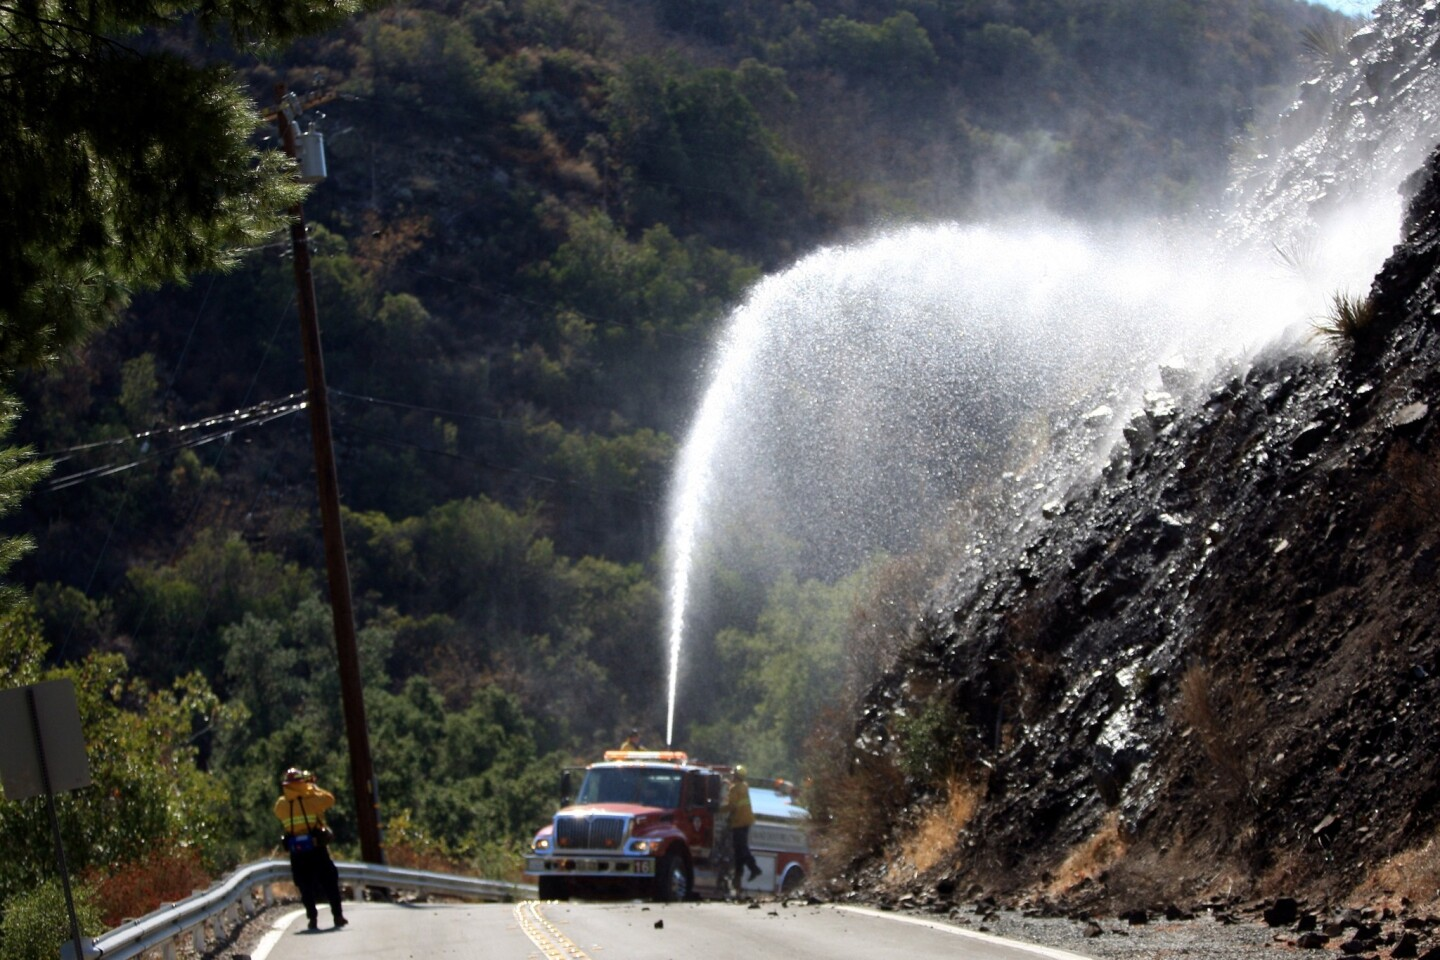 Orange County Fire Authority firefighters extinguish hot spots near homes on Silverado Canyon Road as crews battle the Silverado Fire in the Cleveland National Forest on Saturday.